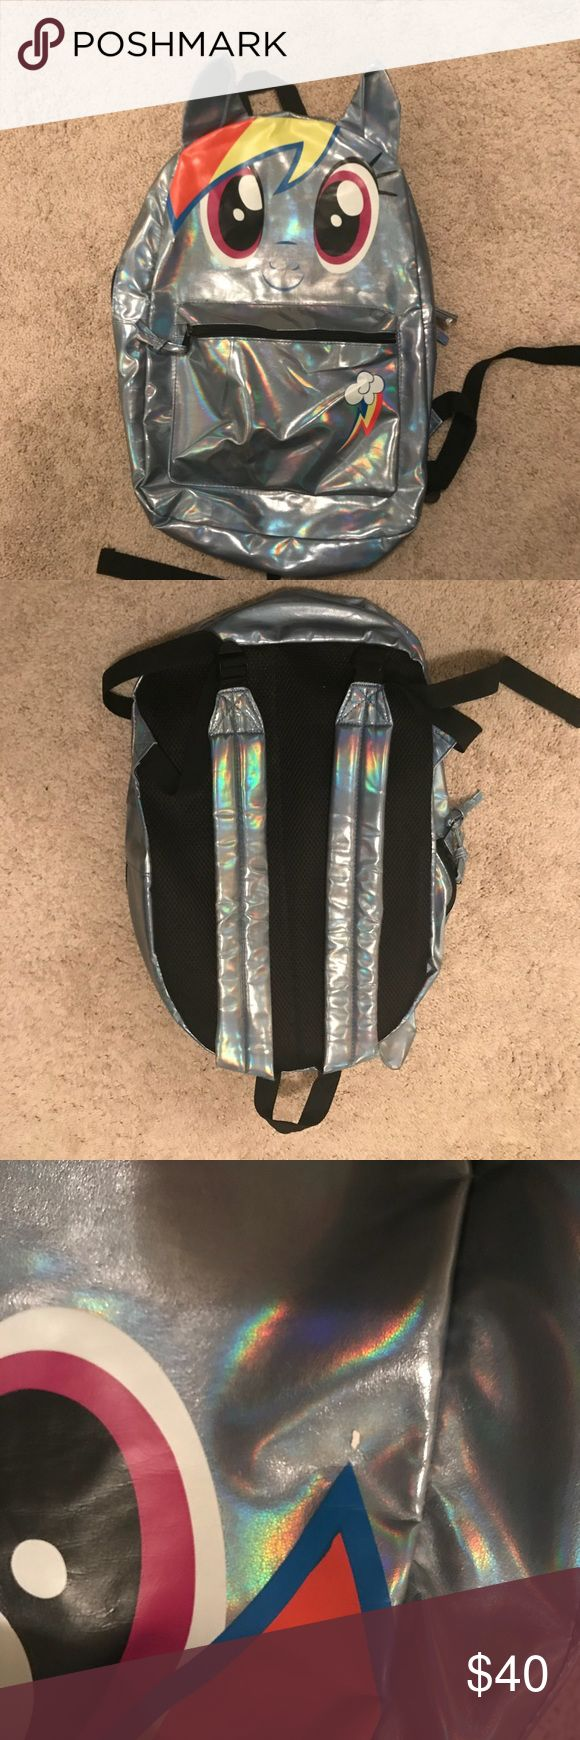 My Little Pony Metallic Backpack My Little Pony Metallic Backpack. Used condition. 2 small blemishes, see photos for details. My Little Pony Accessories Bags